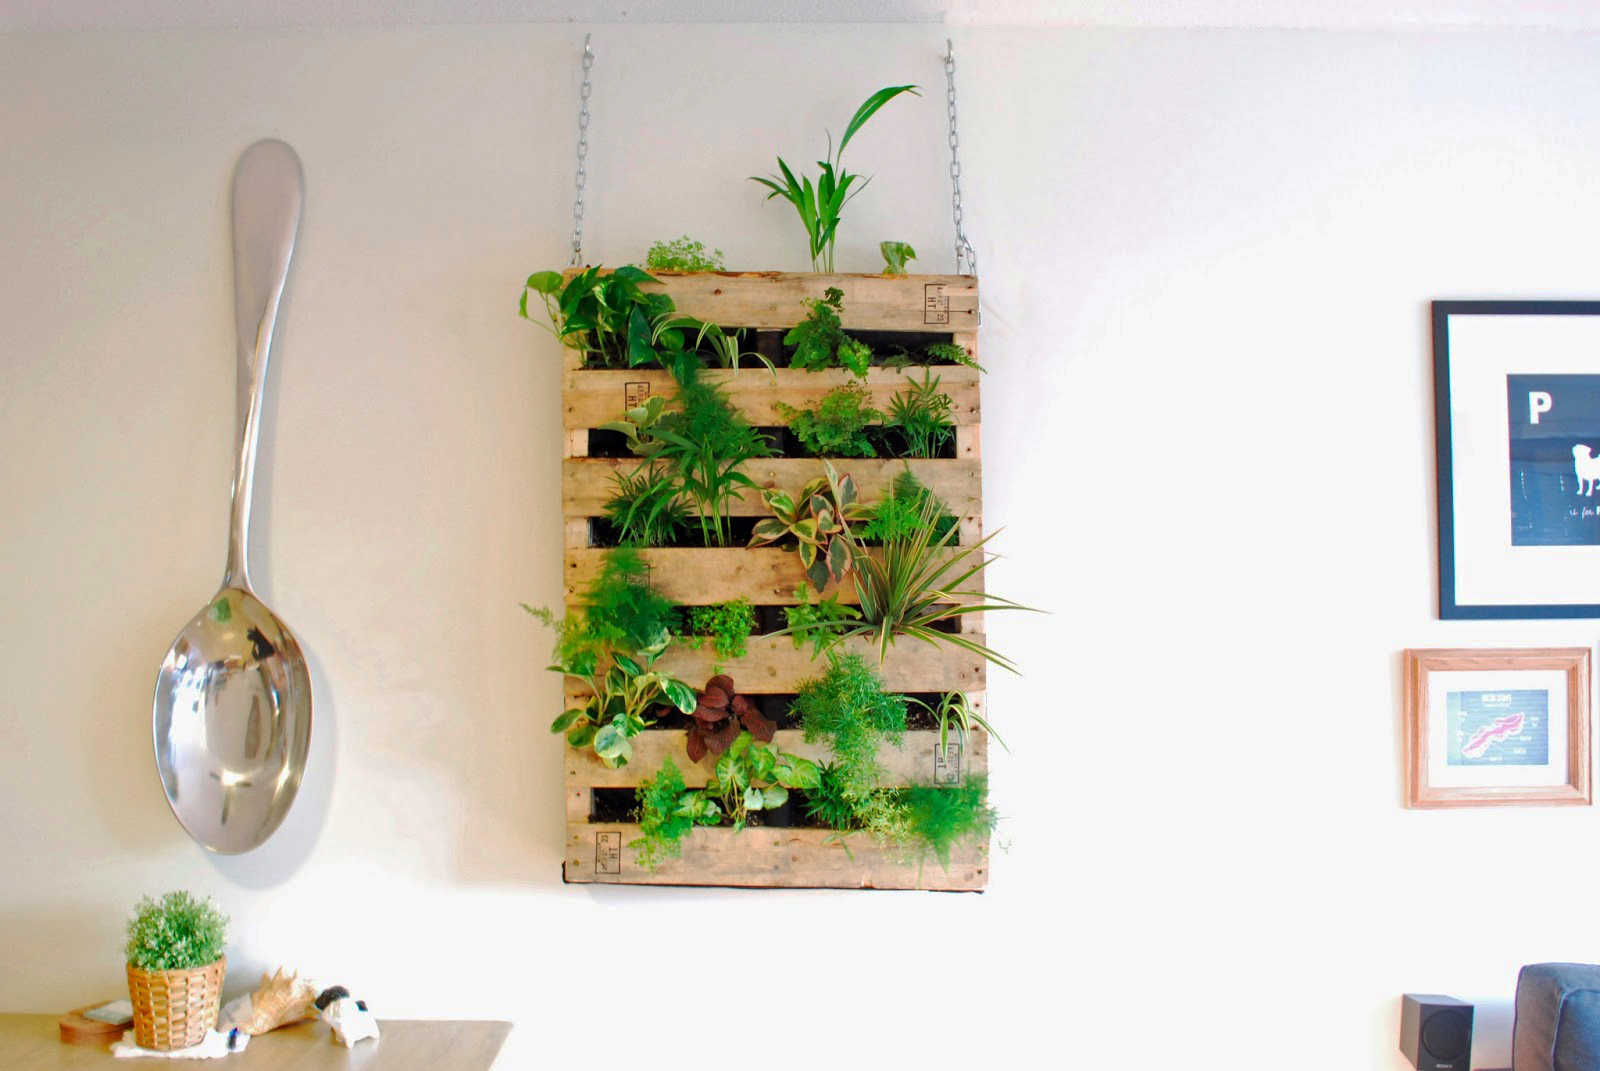 How To Make Pallet Living Wall DIY amp Crafts Handimania